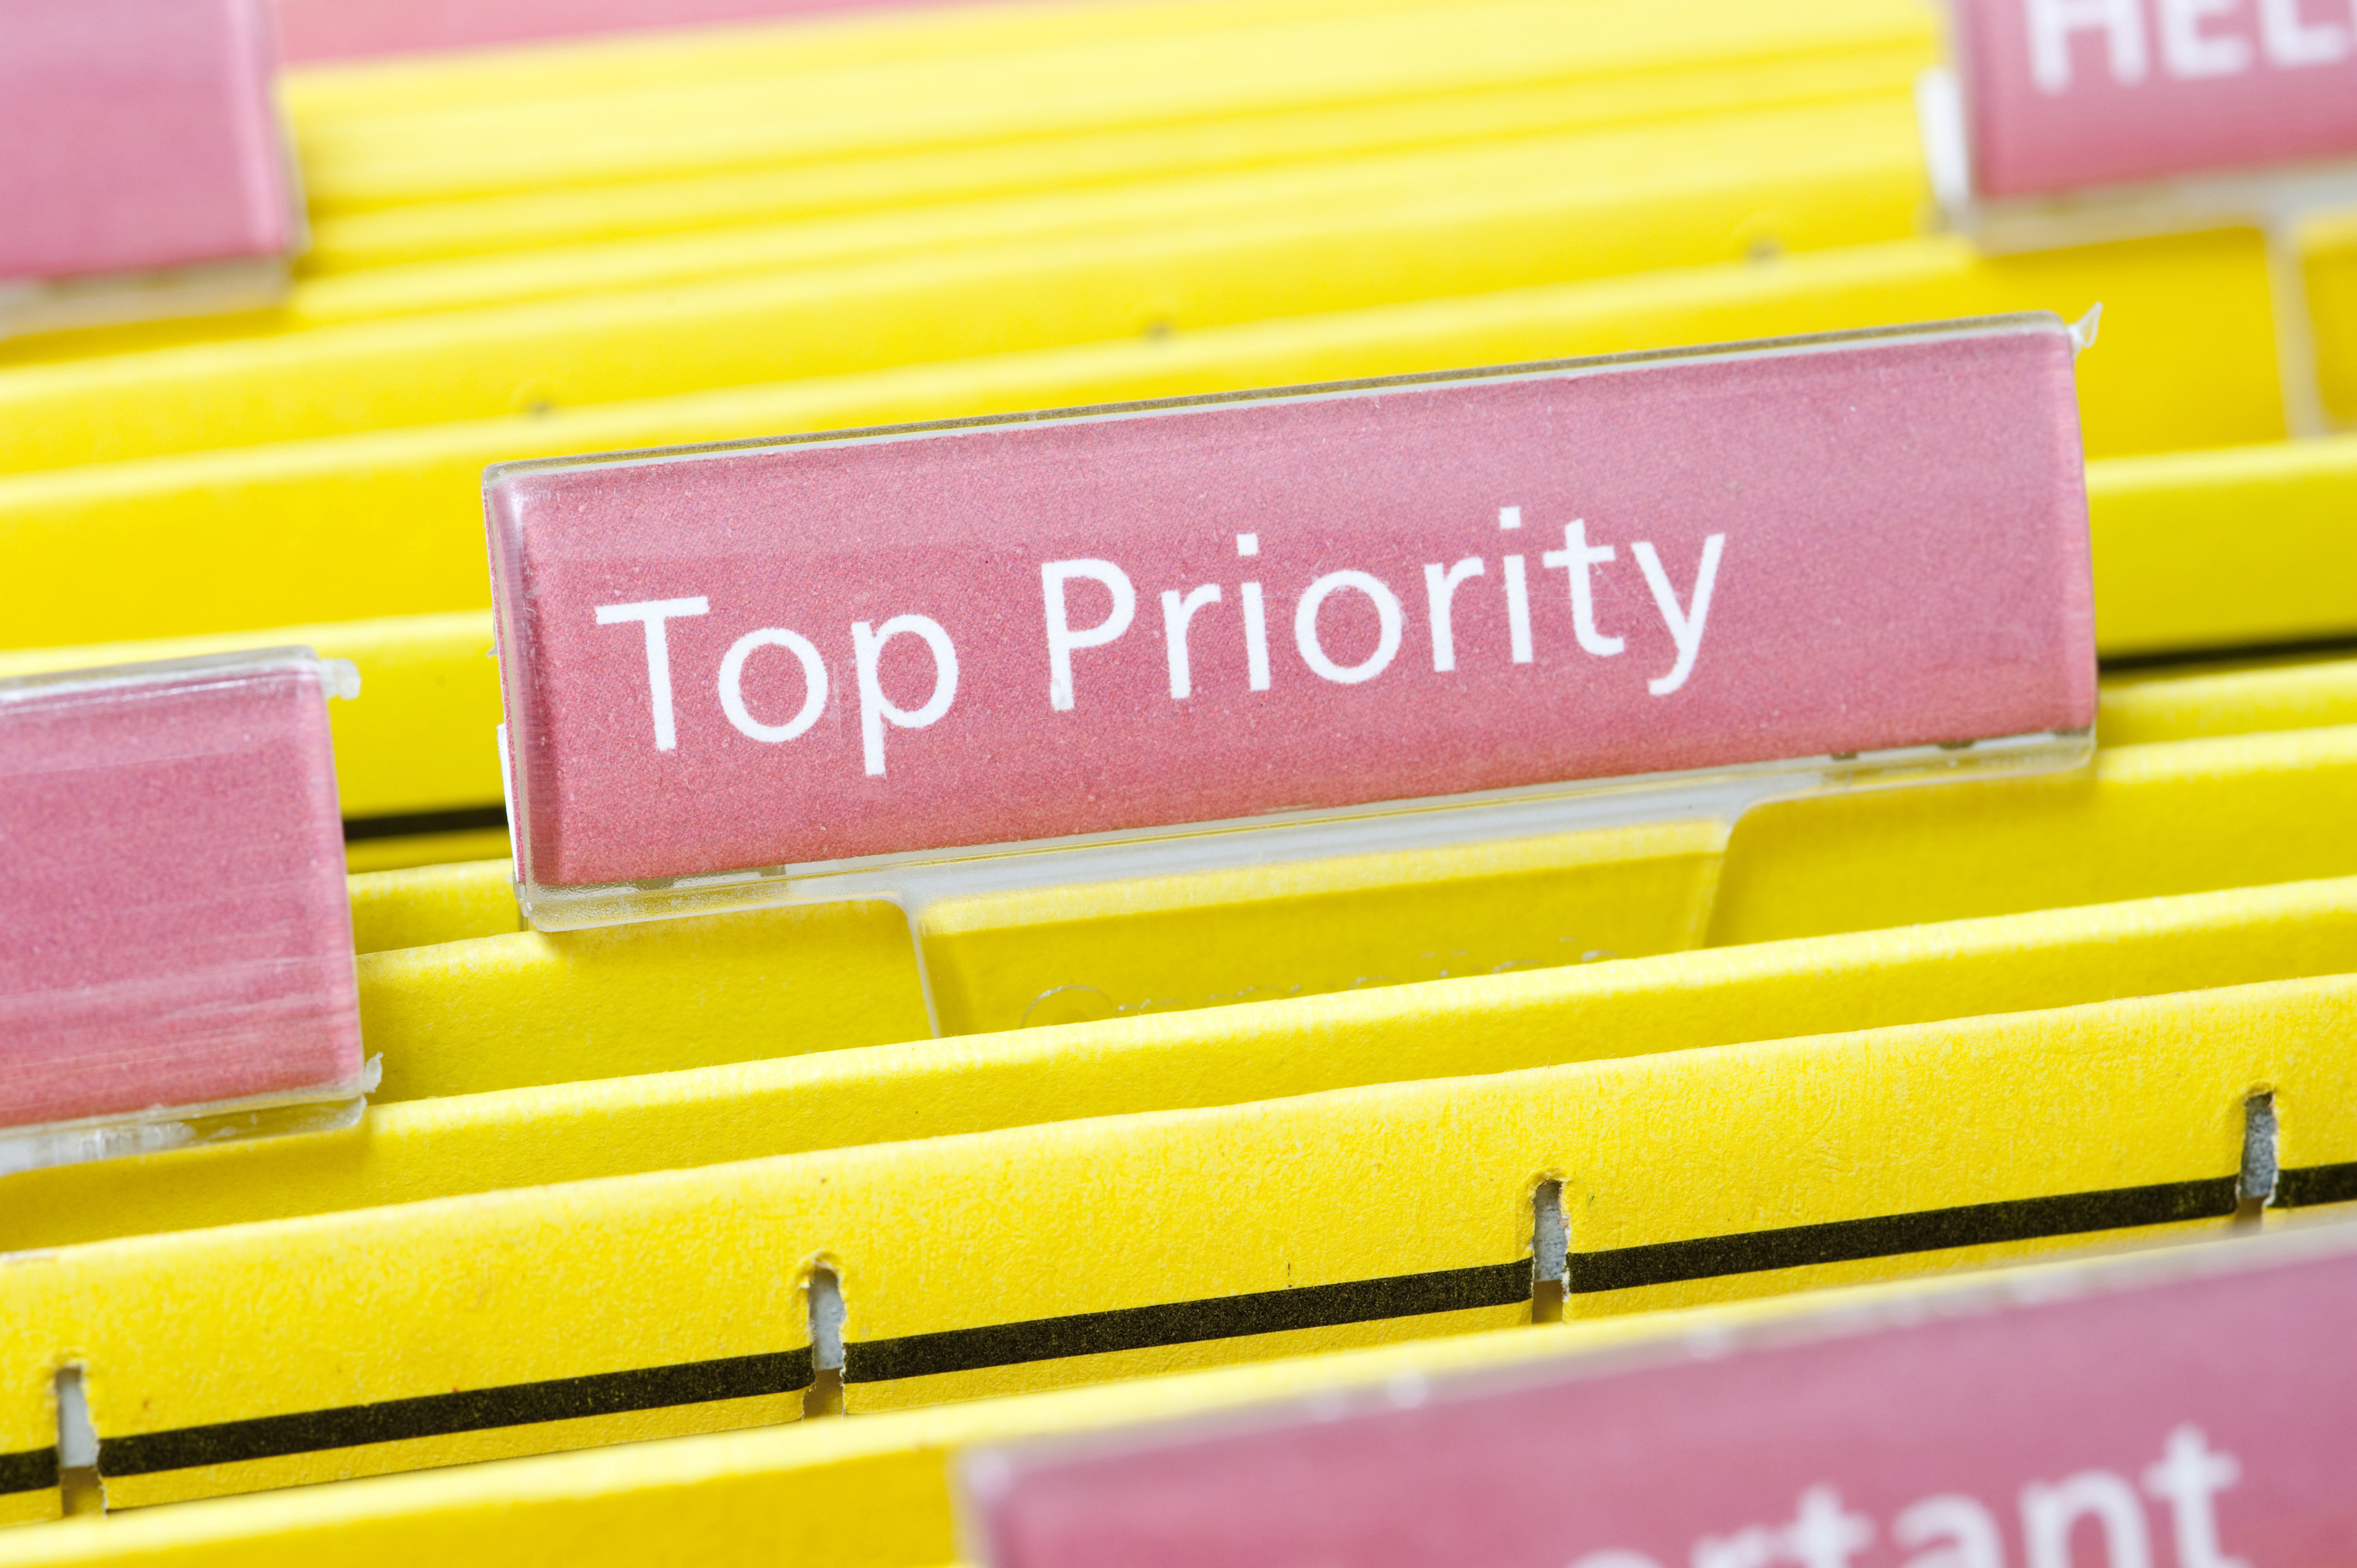 Priority Task Concept - Close up Yellow Folders with Pink Labels, Emphasizing Top Priority.